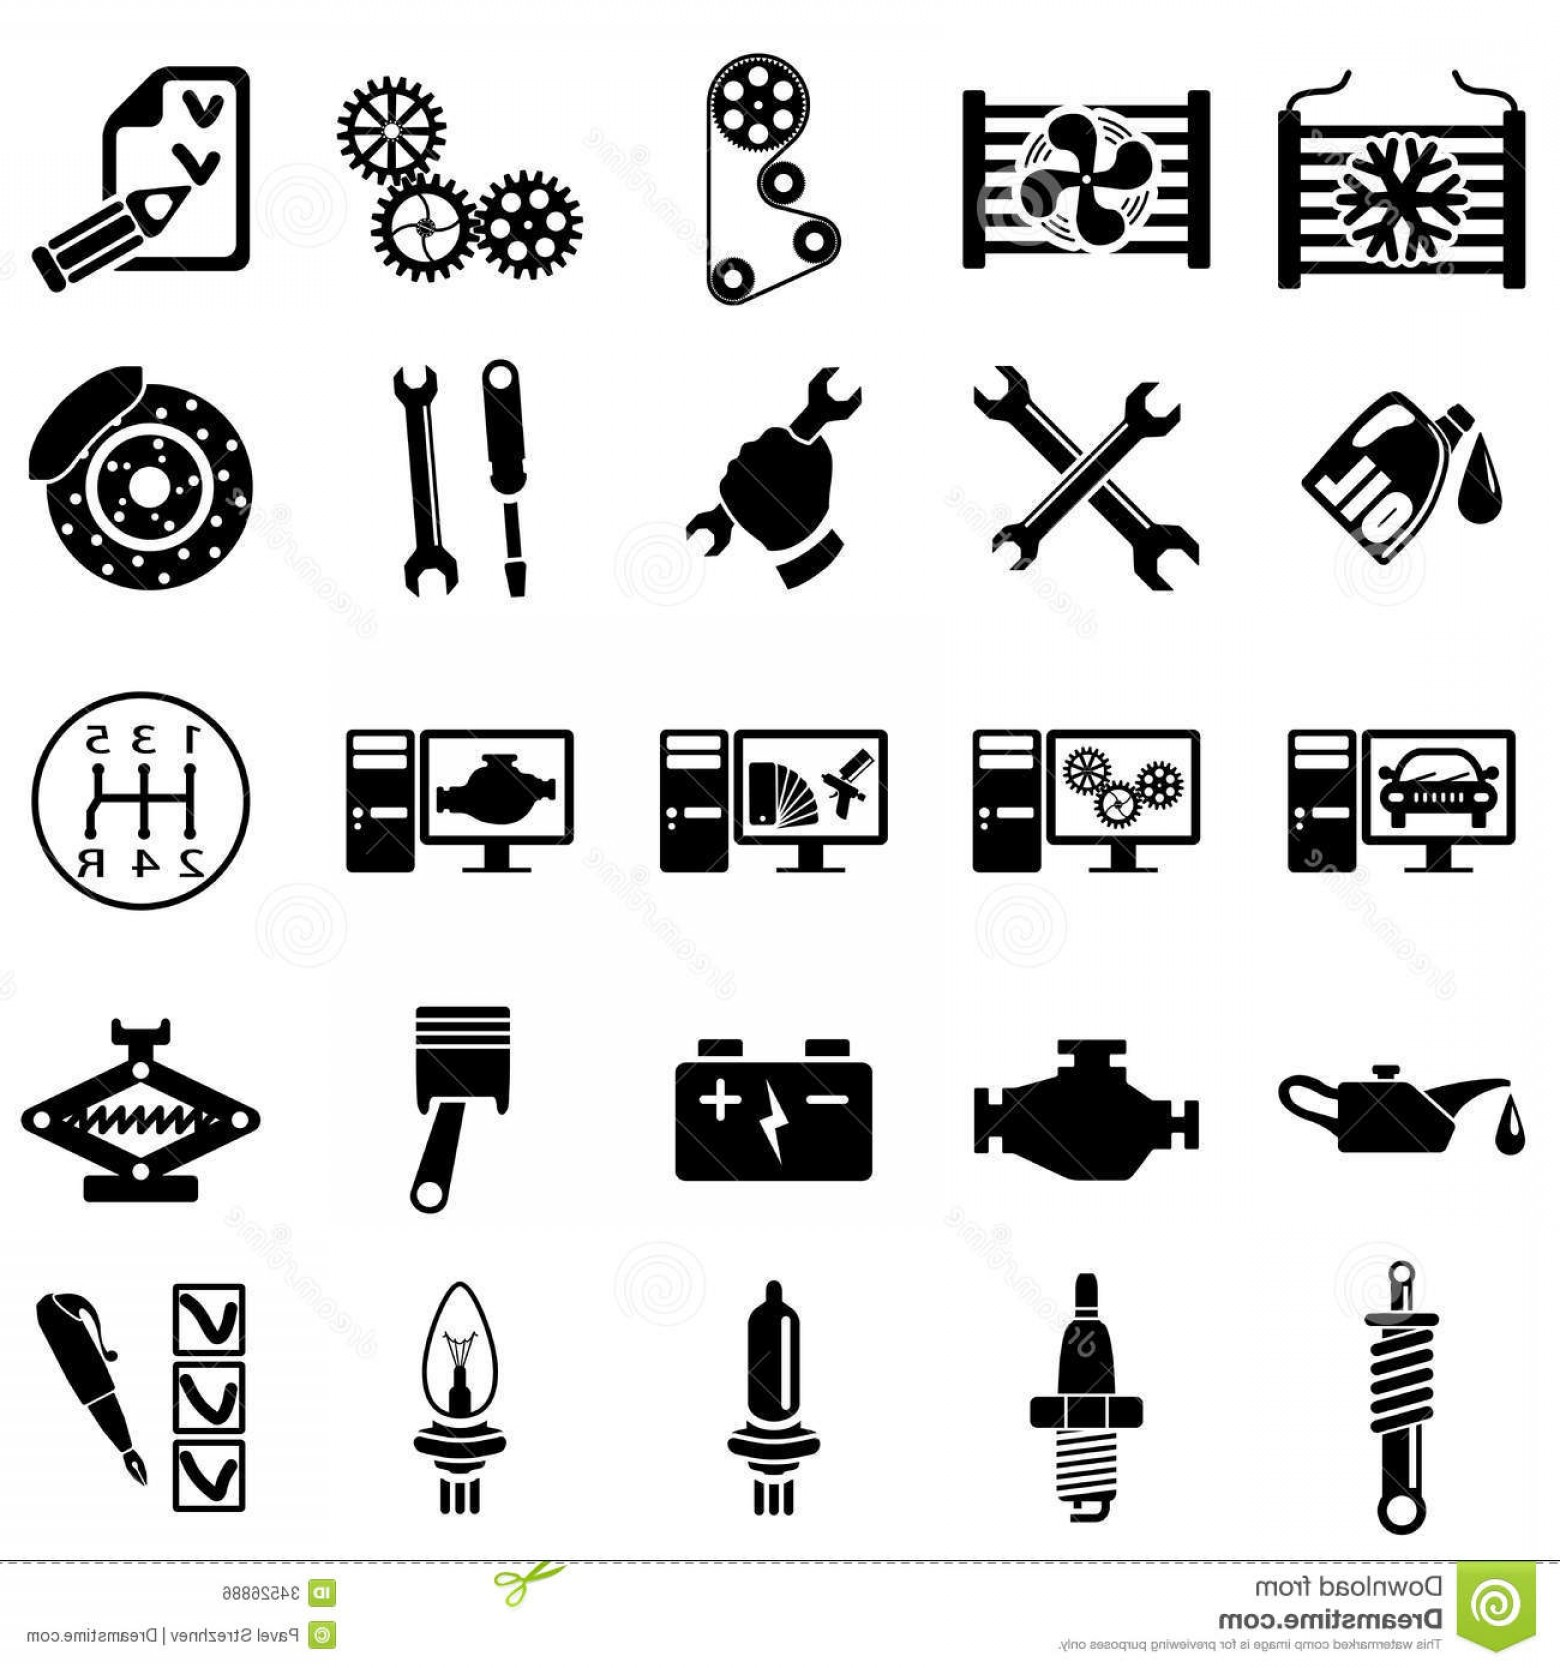 Workshop Icon Vector: Royalty Free Stock Image Auto Repair Icons Set Vector Illustration Image